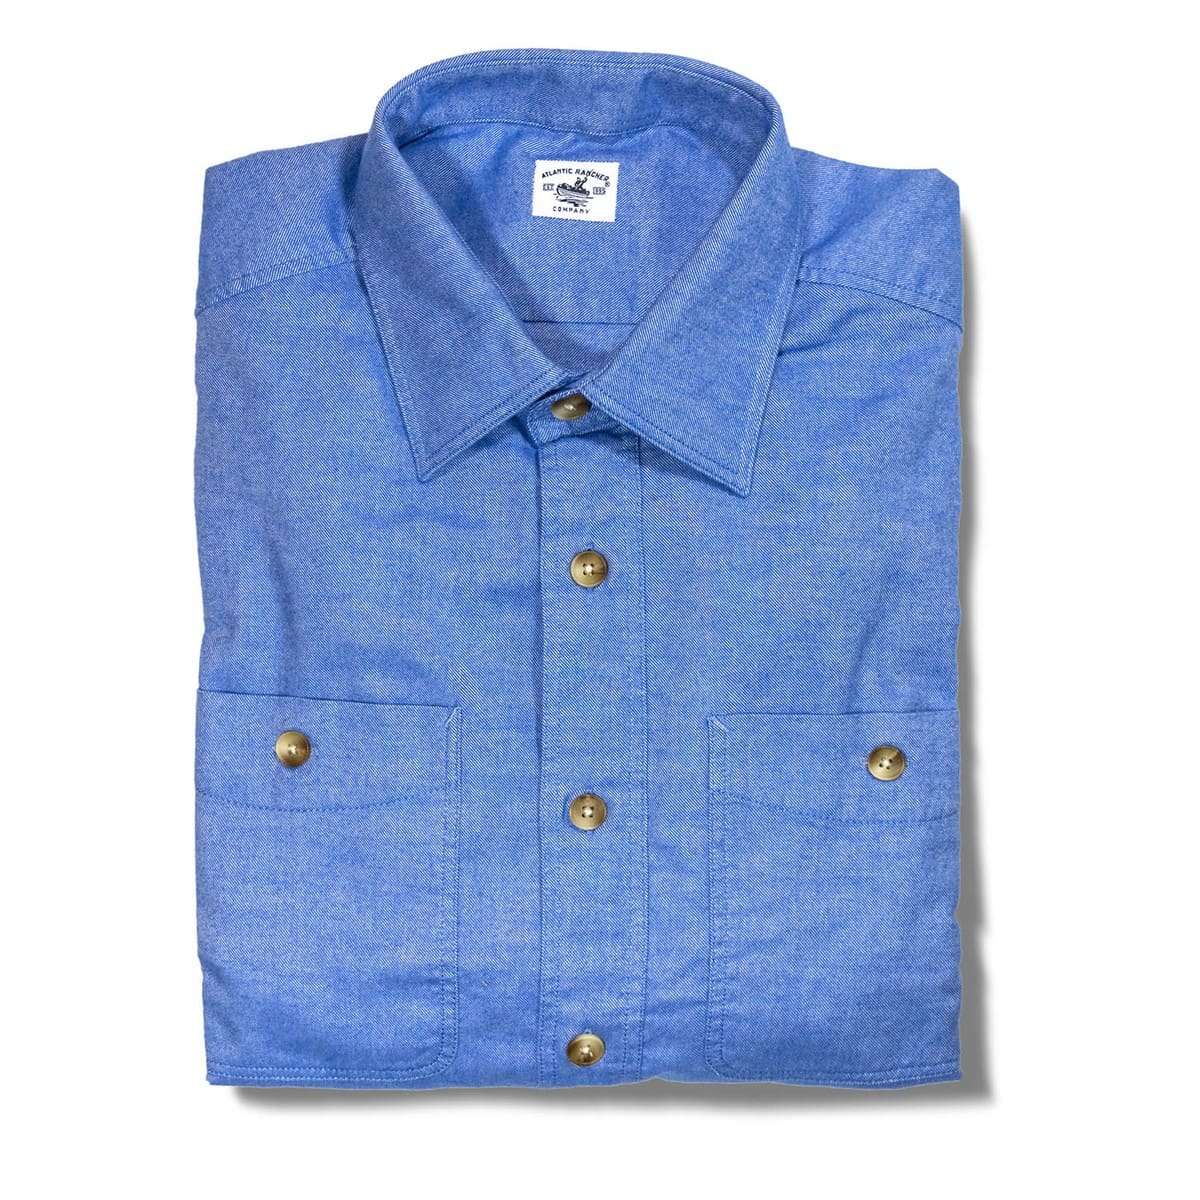 Buy The Saltwash Flannel Dock Shirt - Bimini Blue